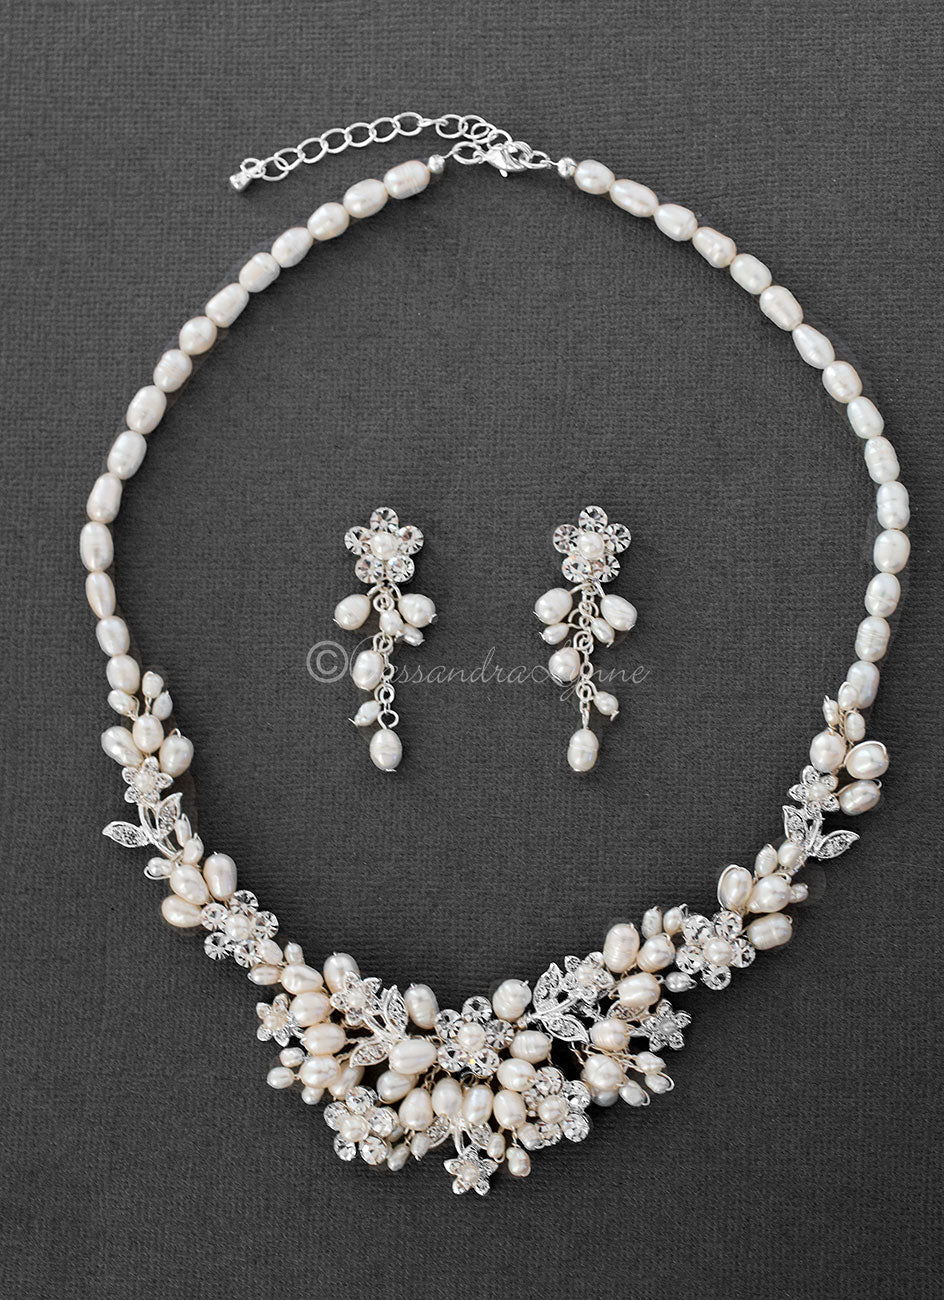 Crystal Flowers and Pearls Wedding Jewelry Set